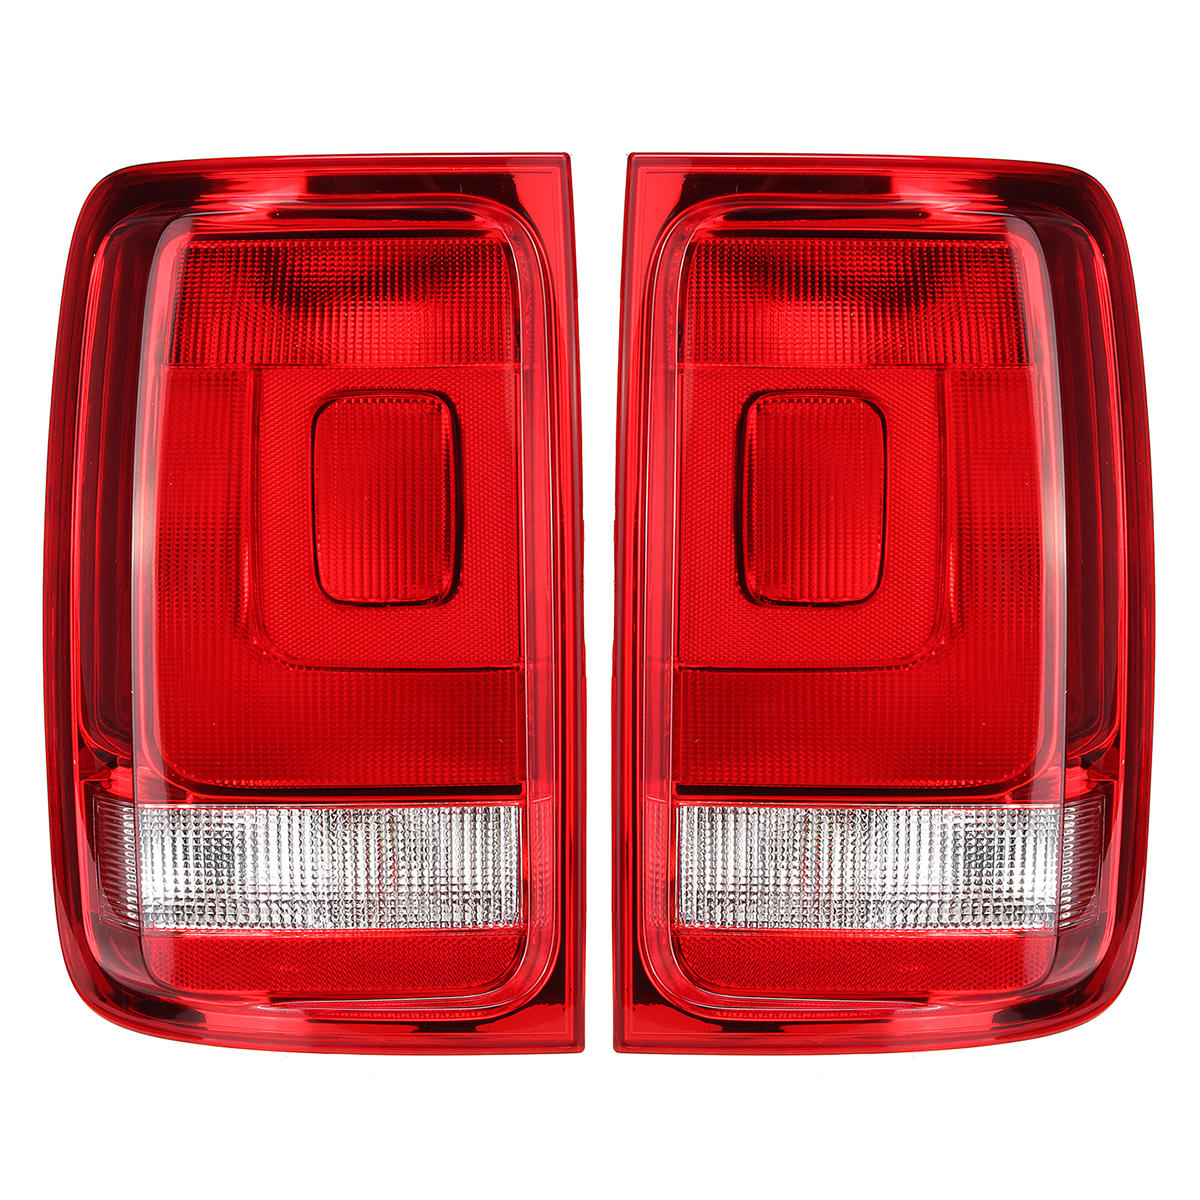 Car Rear Left/Right Tail Light Assembly Brake Lamp with No Bulbs for Volkswagen Amarok UTE Pickup 2010-UP